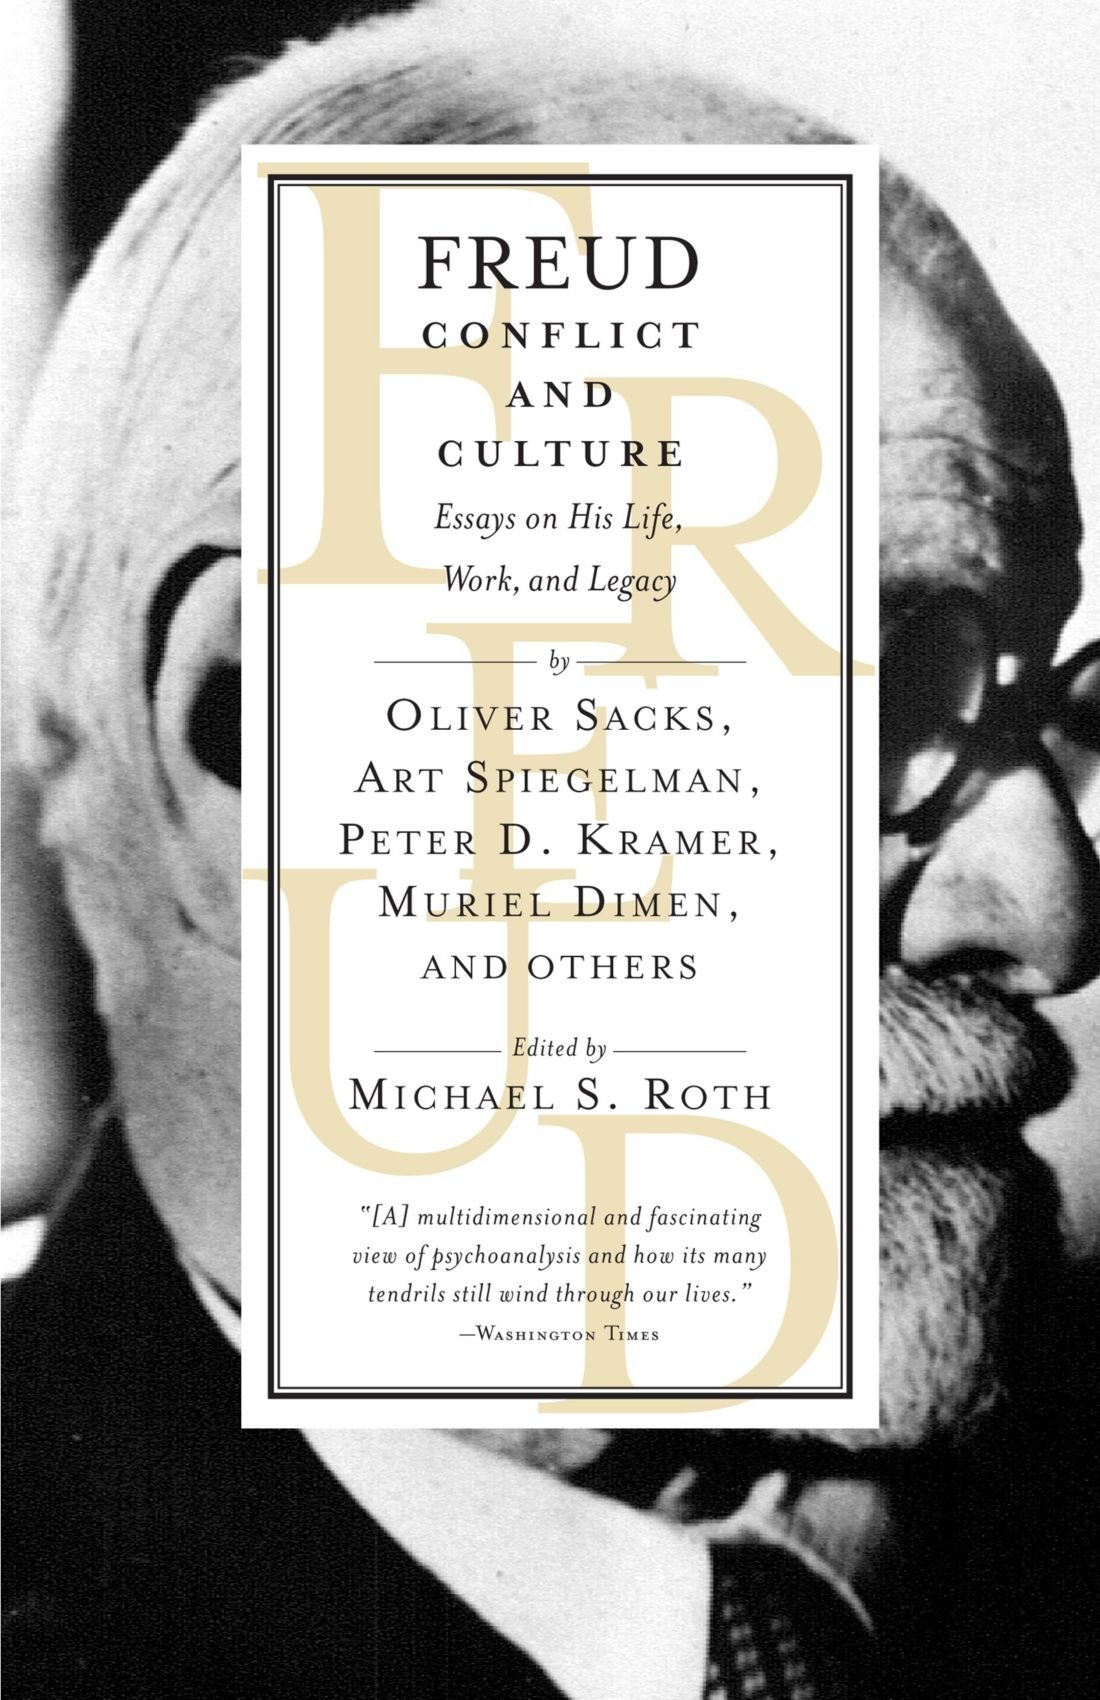 freud conflict and culture essays on his life work and legacy  freud conflict and culture essays on his life work and legacy michael s roth 9780679772927 com books